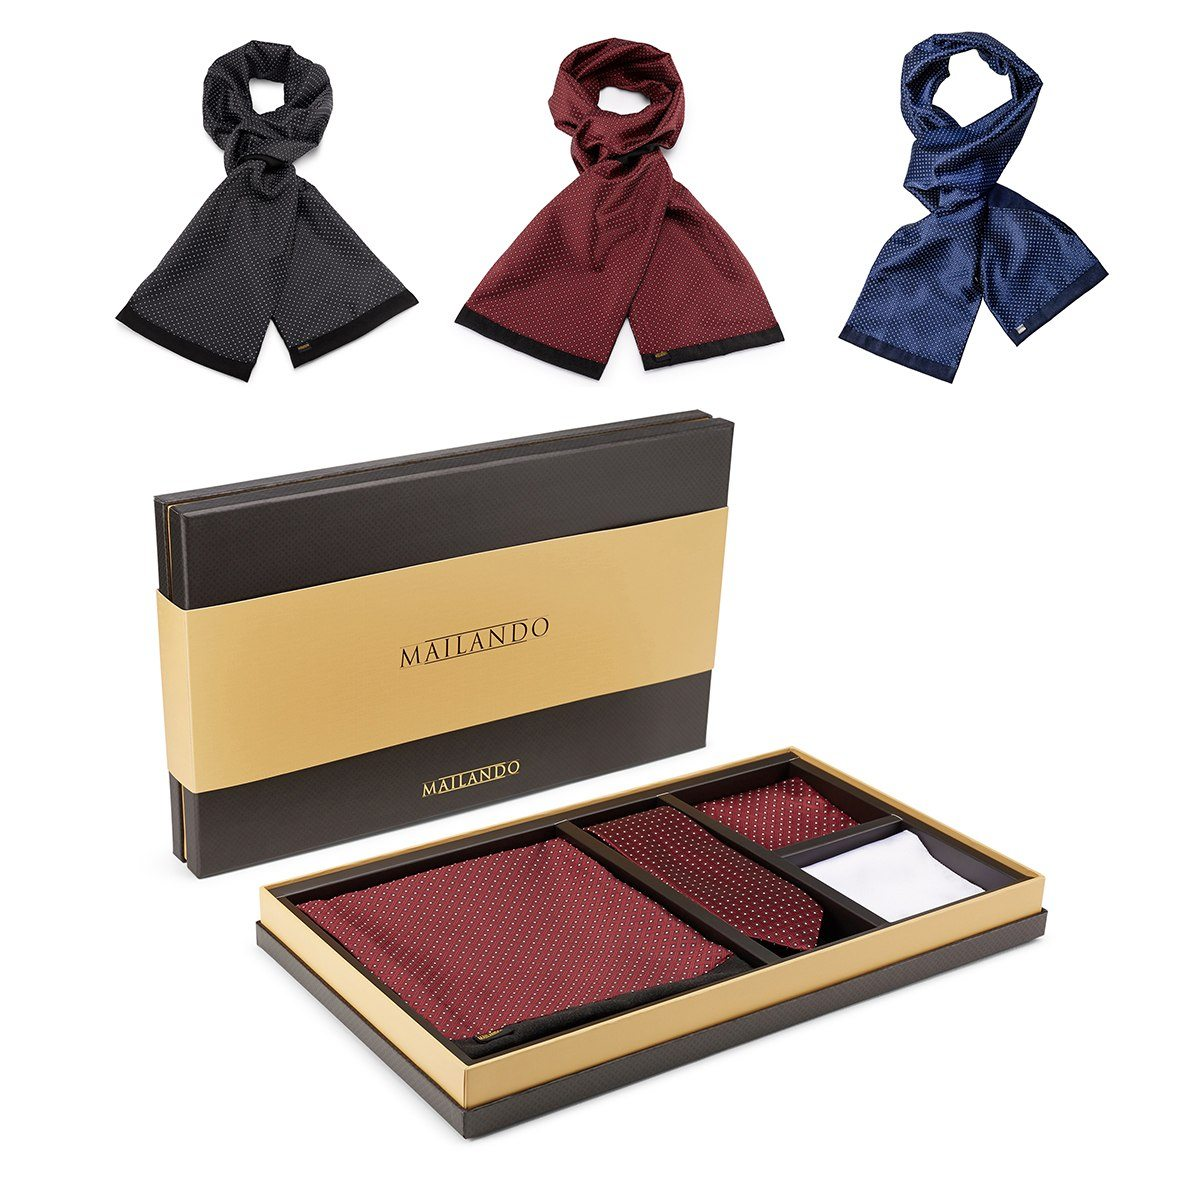 PERSONALIZED MEN GIFTSET WITH SCARF, TIE & HANDKERCHIEF